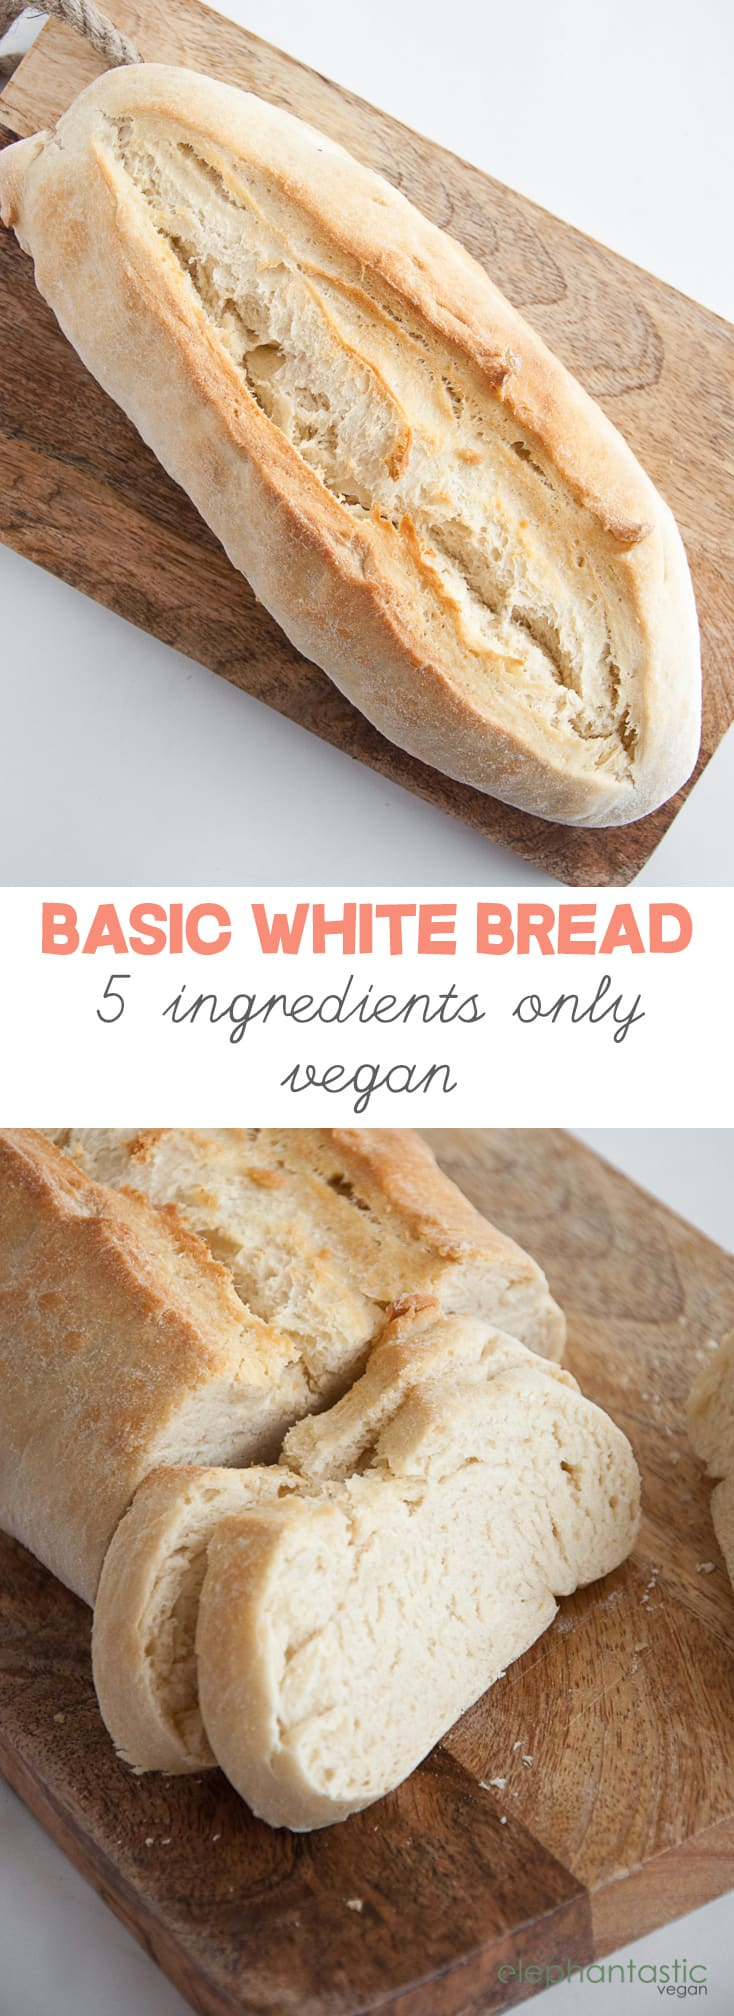 Basic White Bread with only 5 ingredients #basic #white #bread #vegan #easy